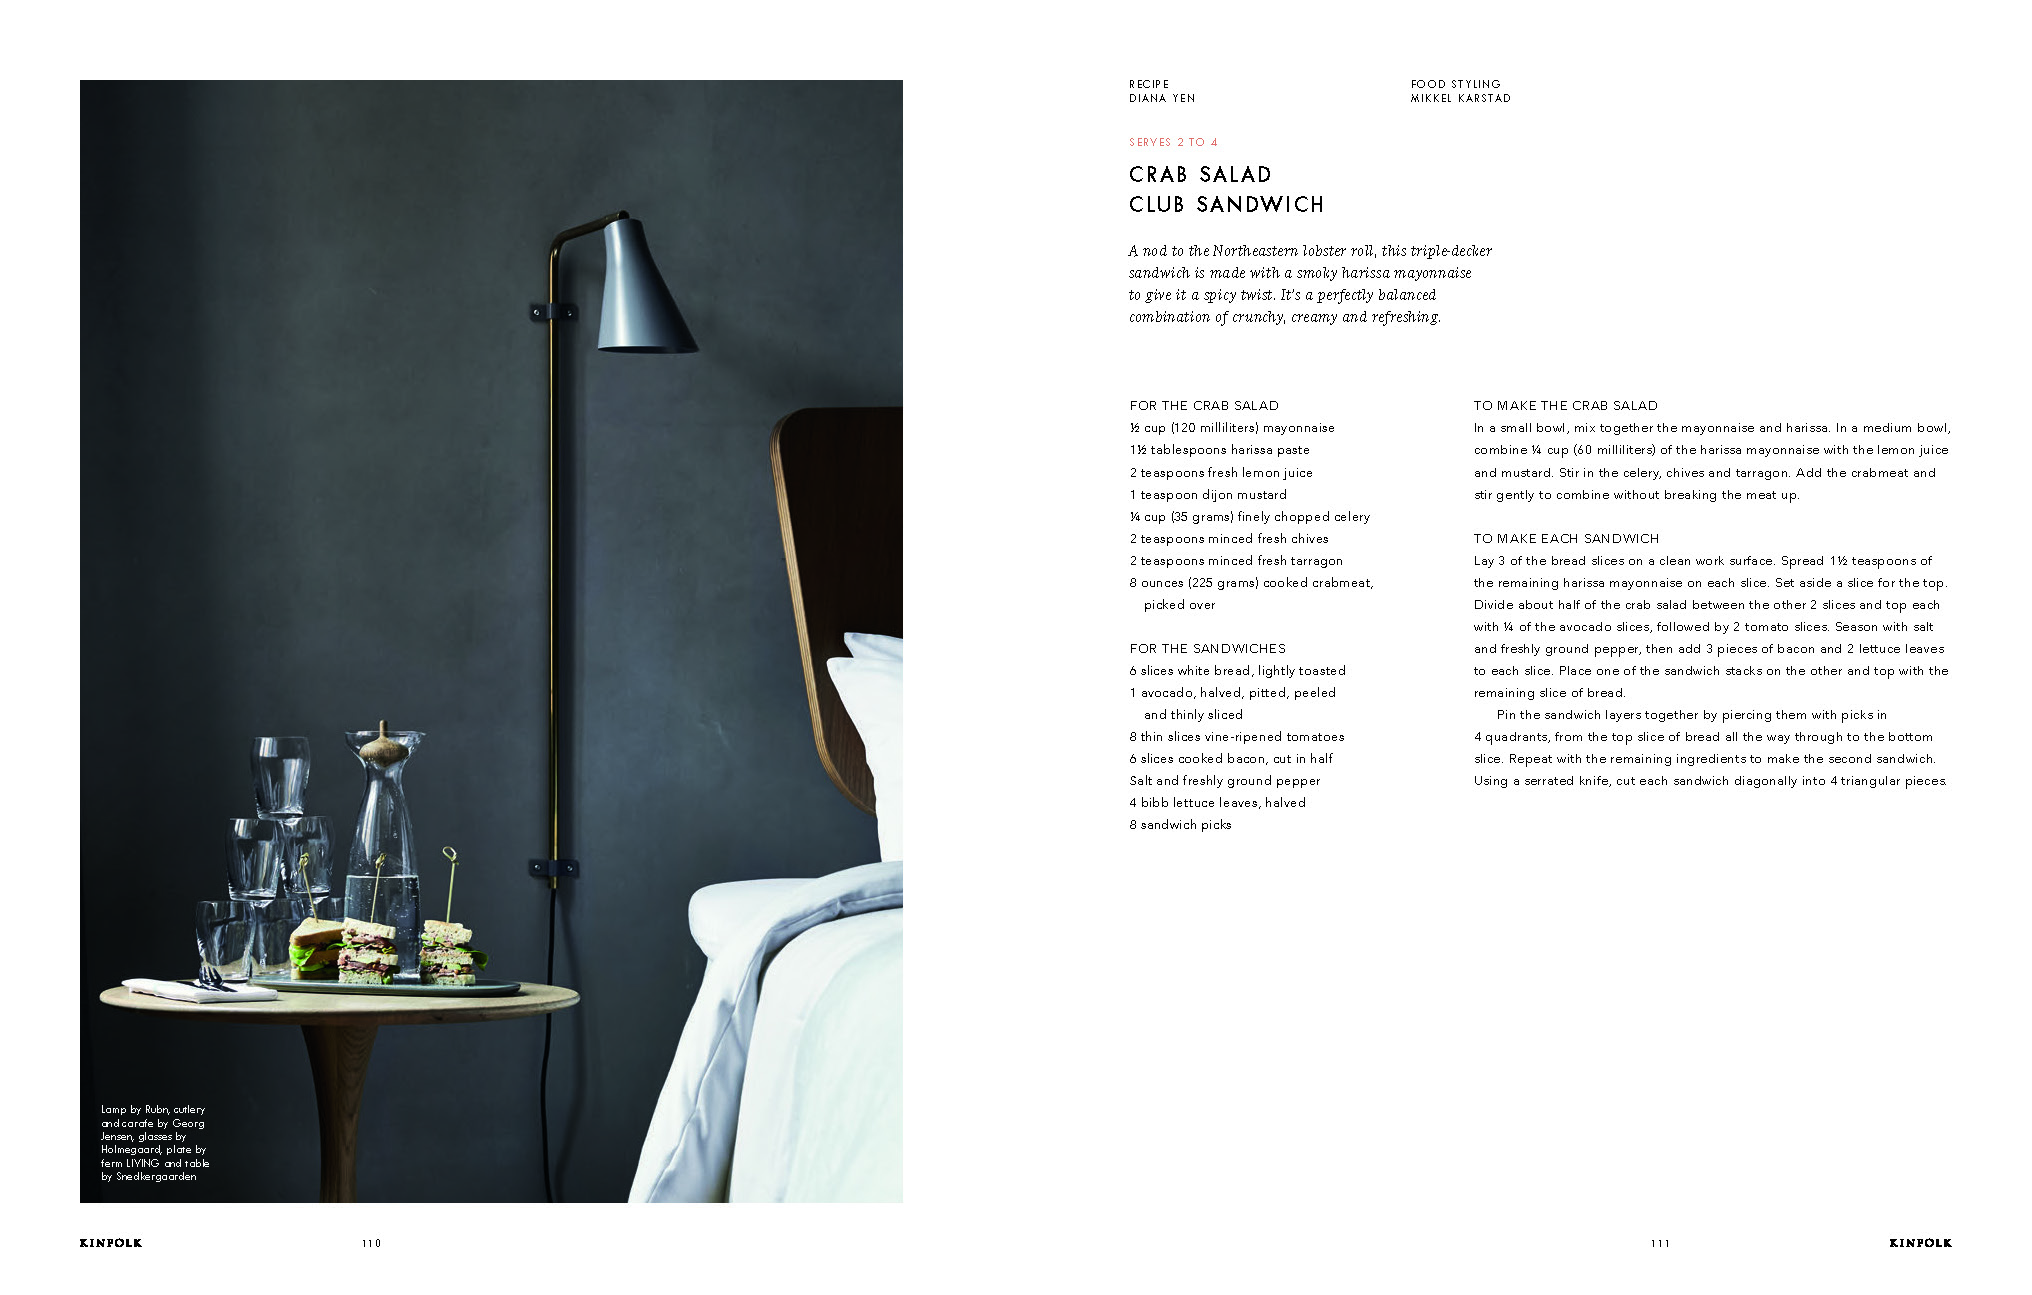 Kinfolk20_TravelIssue_Room Service Menu_Page_4